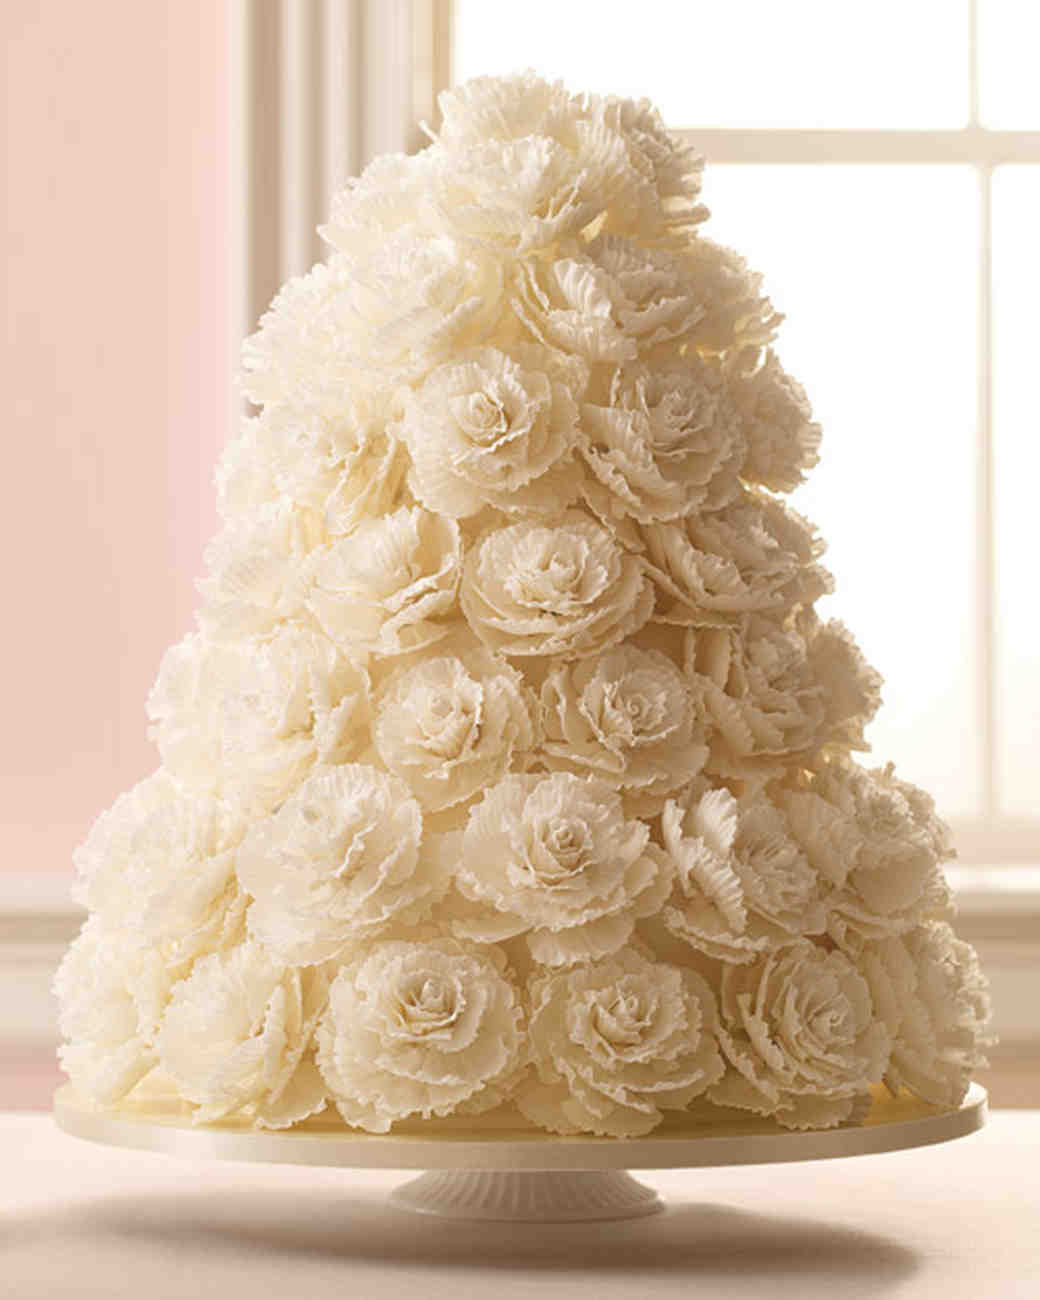 White Sugar Petal Wedding Cake